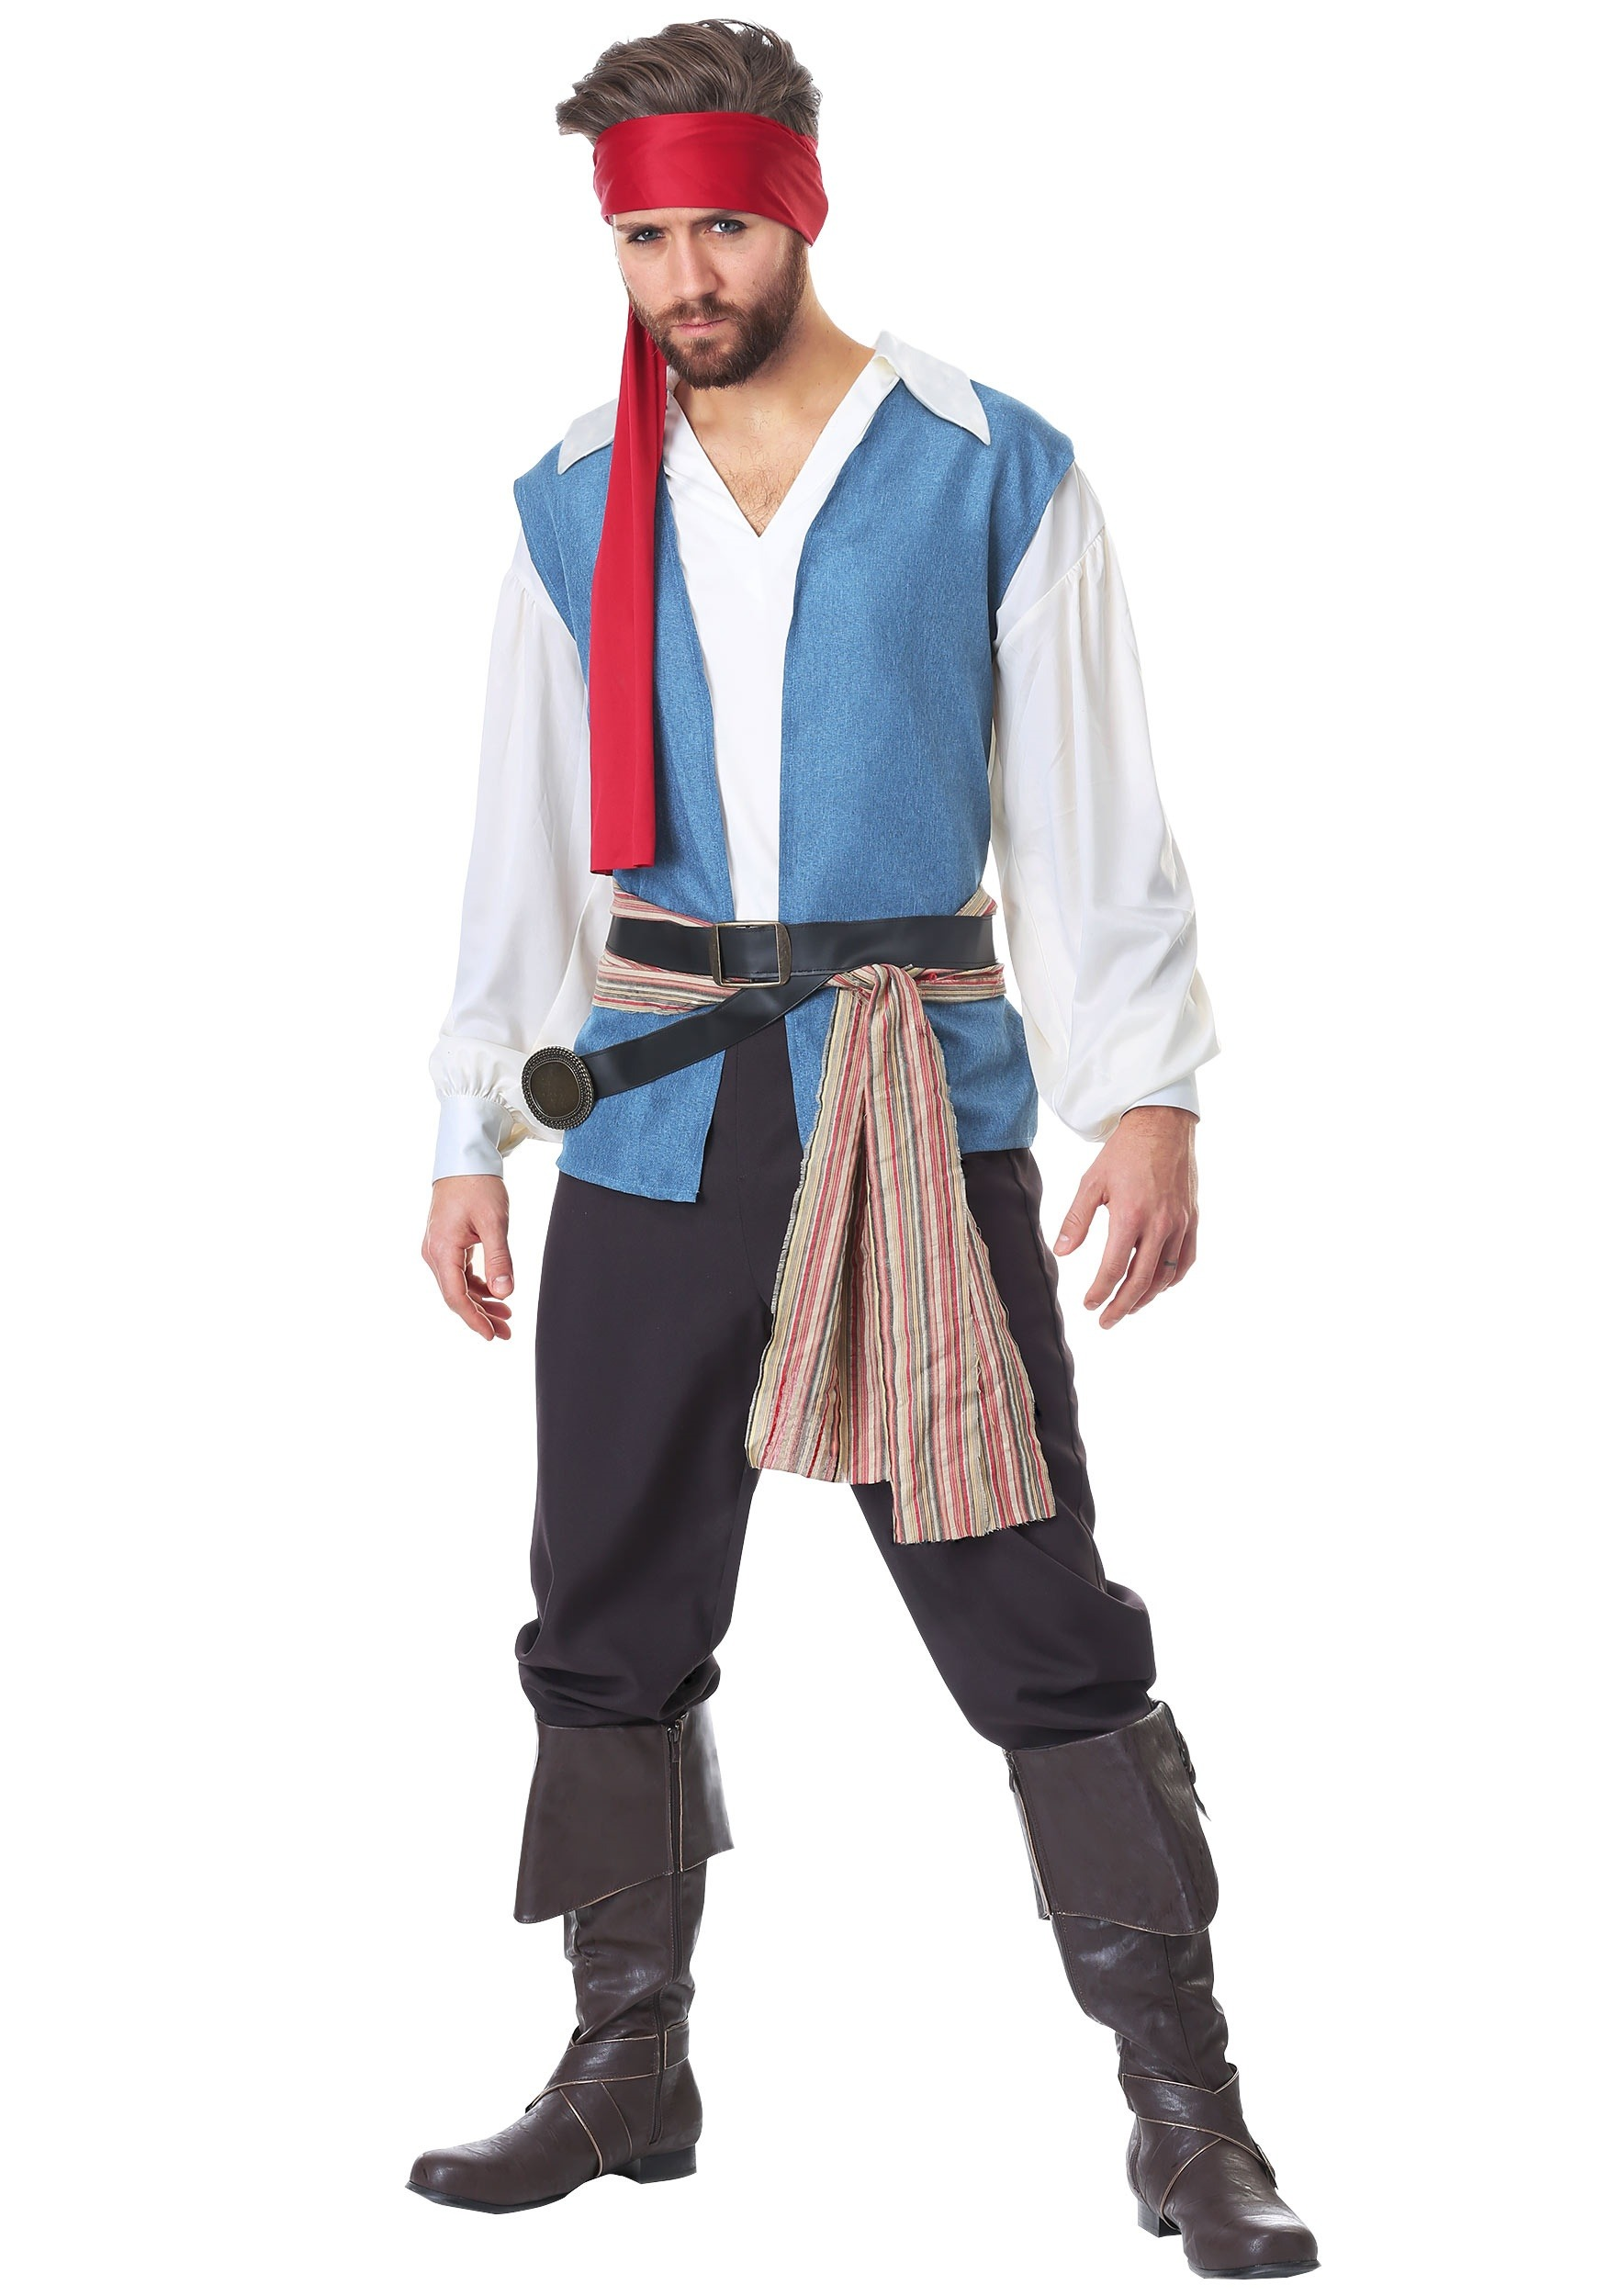 Sparrow_Pirate_Costume_for_Plus_Size_Men